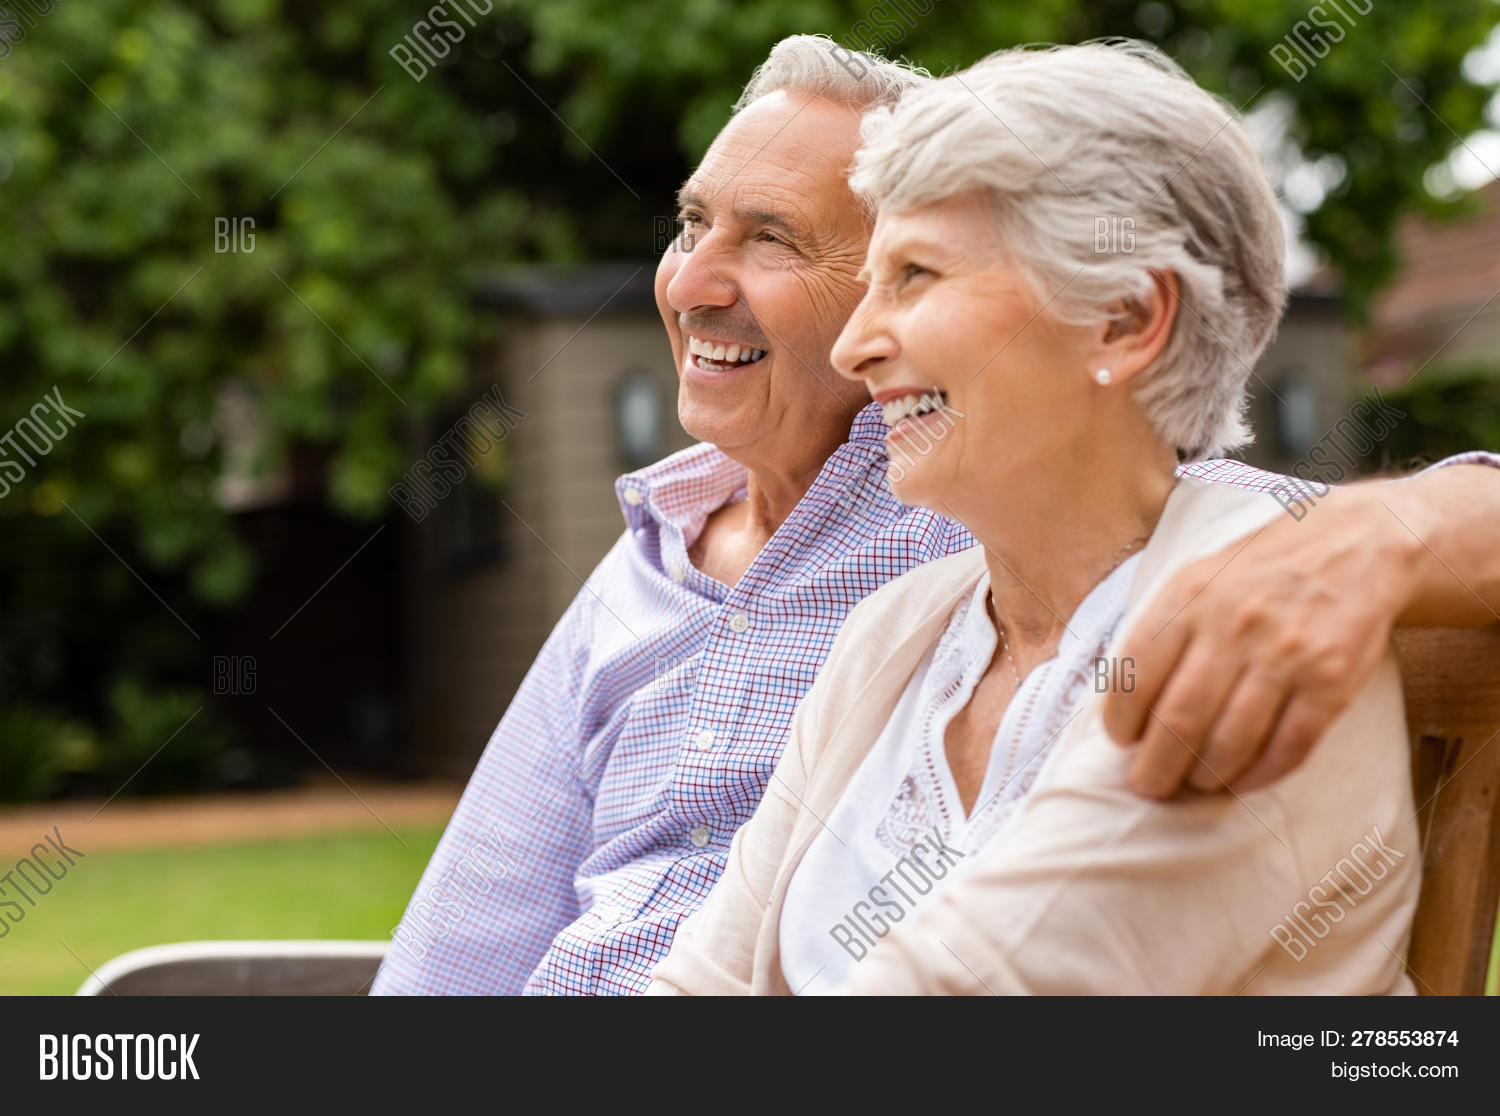 Senior couple sitting together on bench at park. Elderly married couple sitting outdoor and relaxing